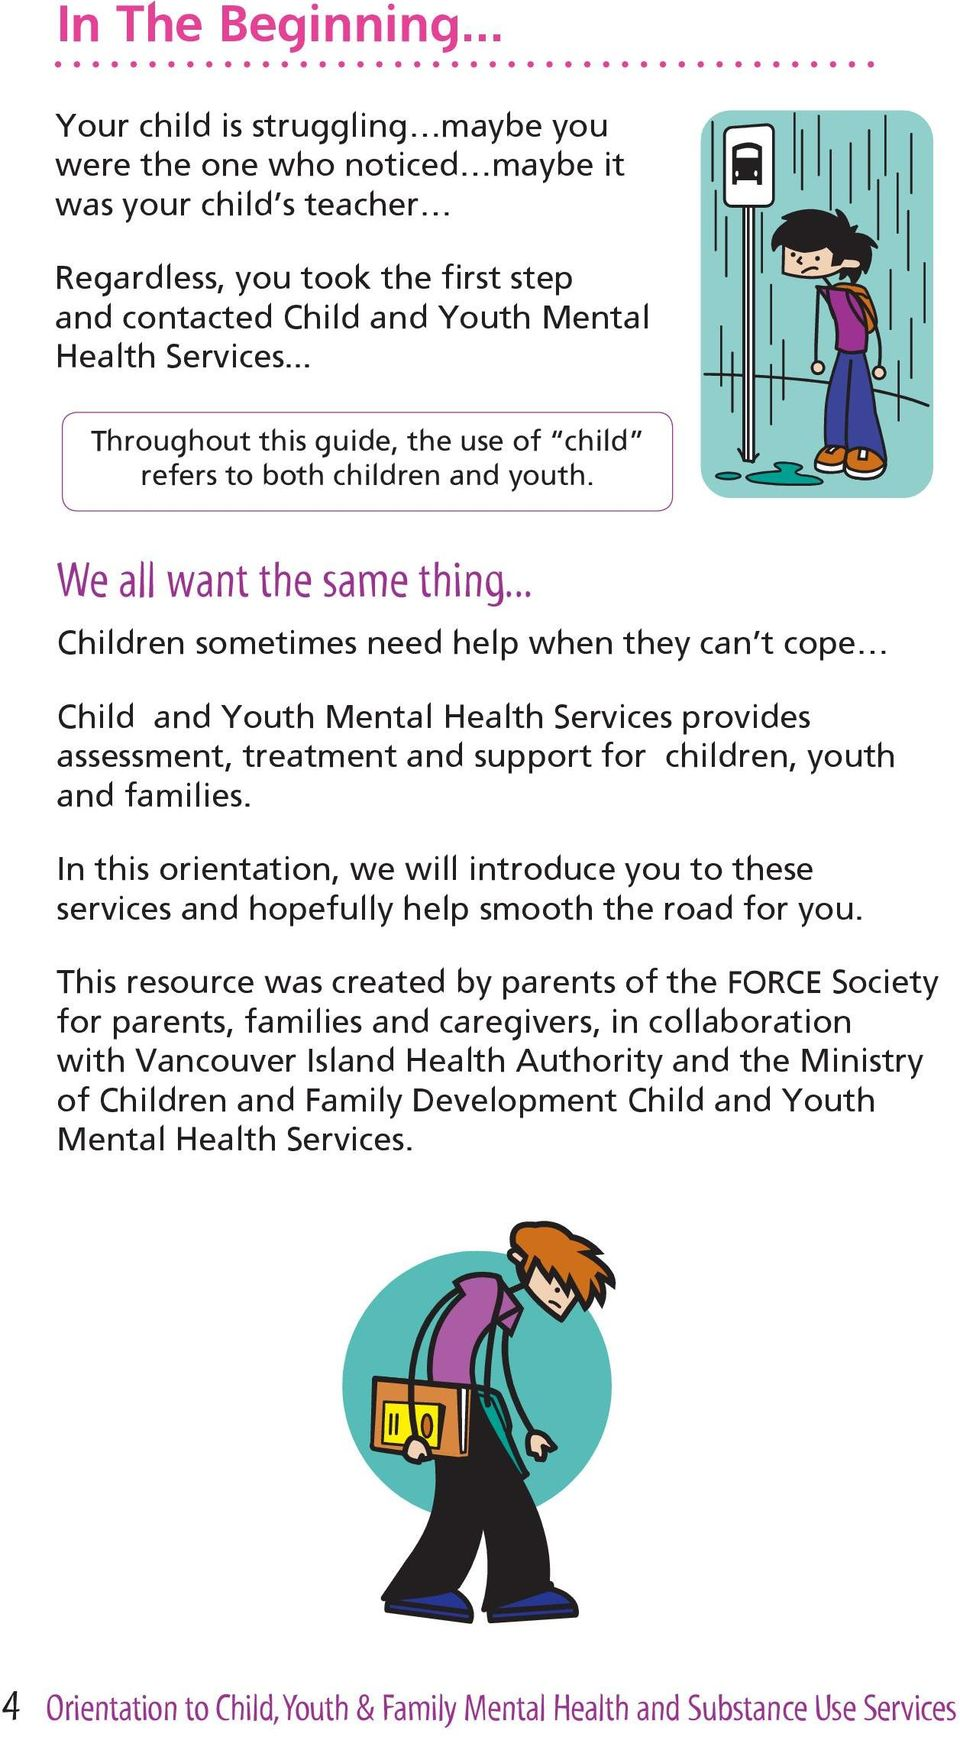 .. Throughout this guide, the use of child refers to both children and youth. We all want the same thing.